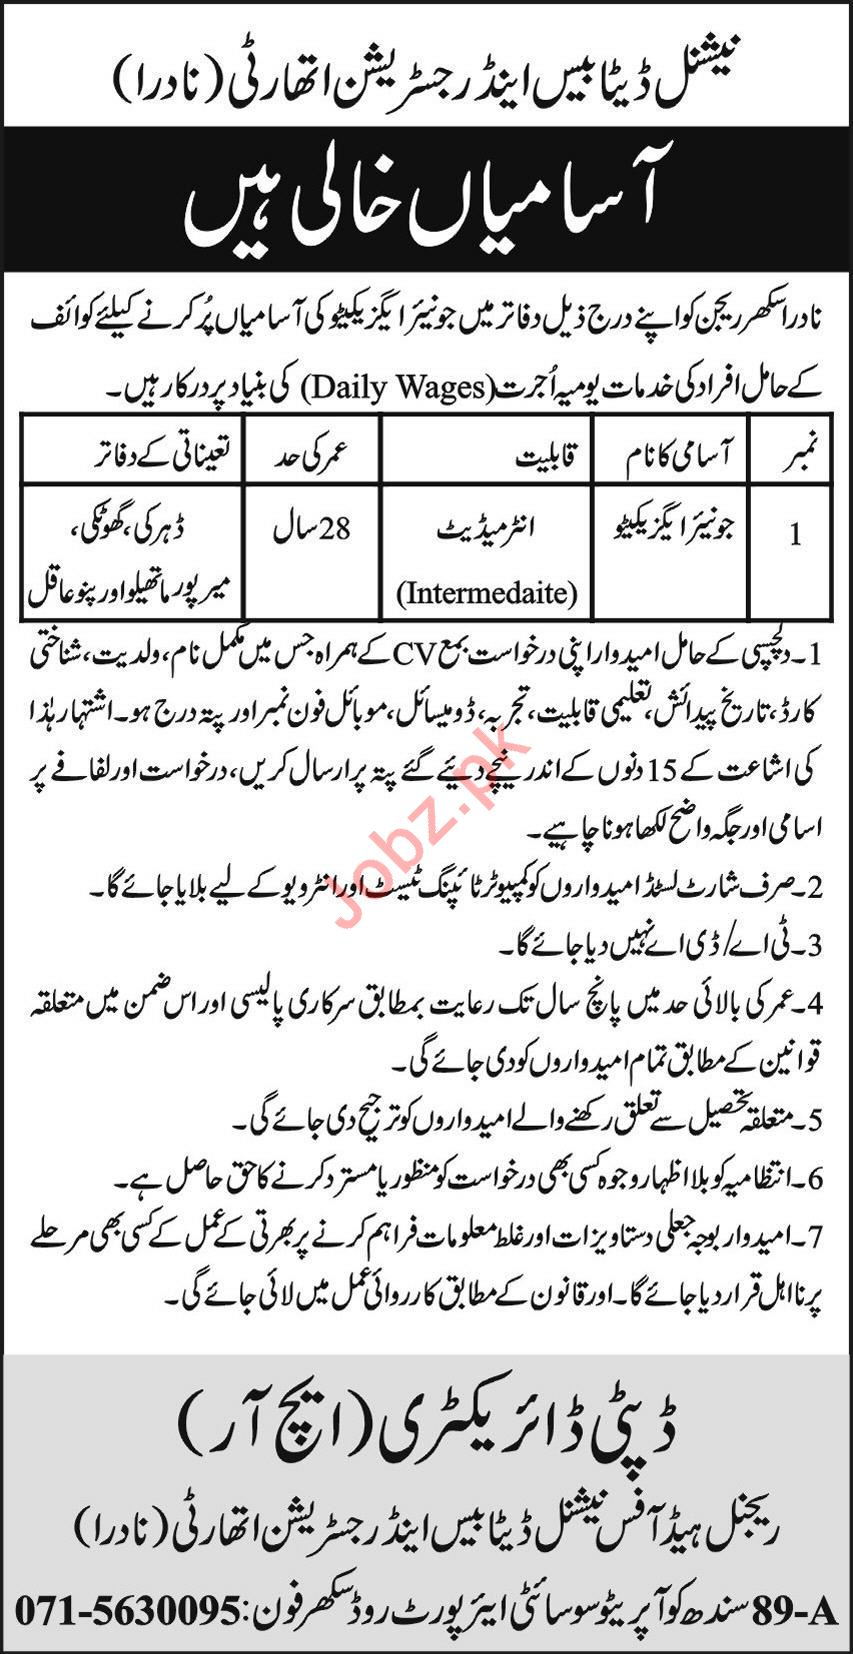 NADRA Sukkur Region Executive Office Jobs 2020